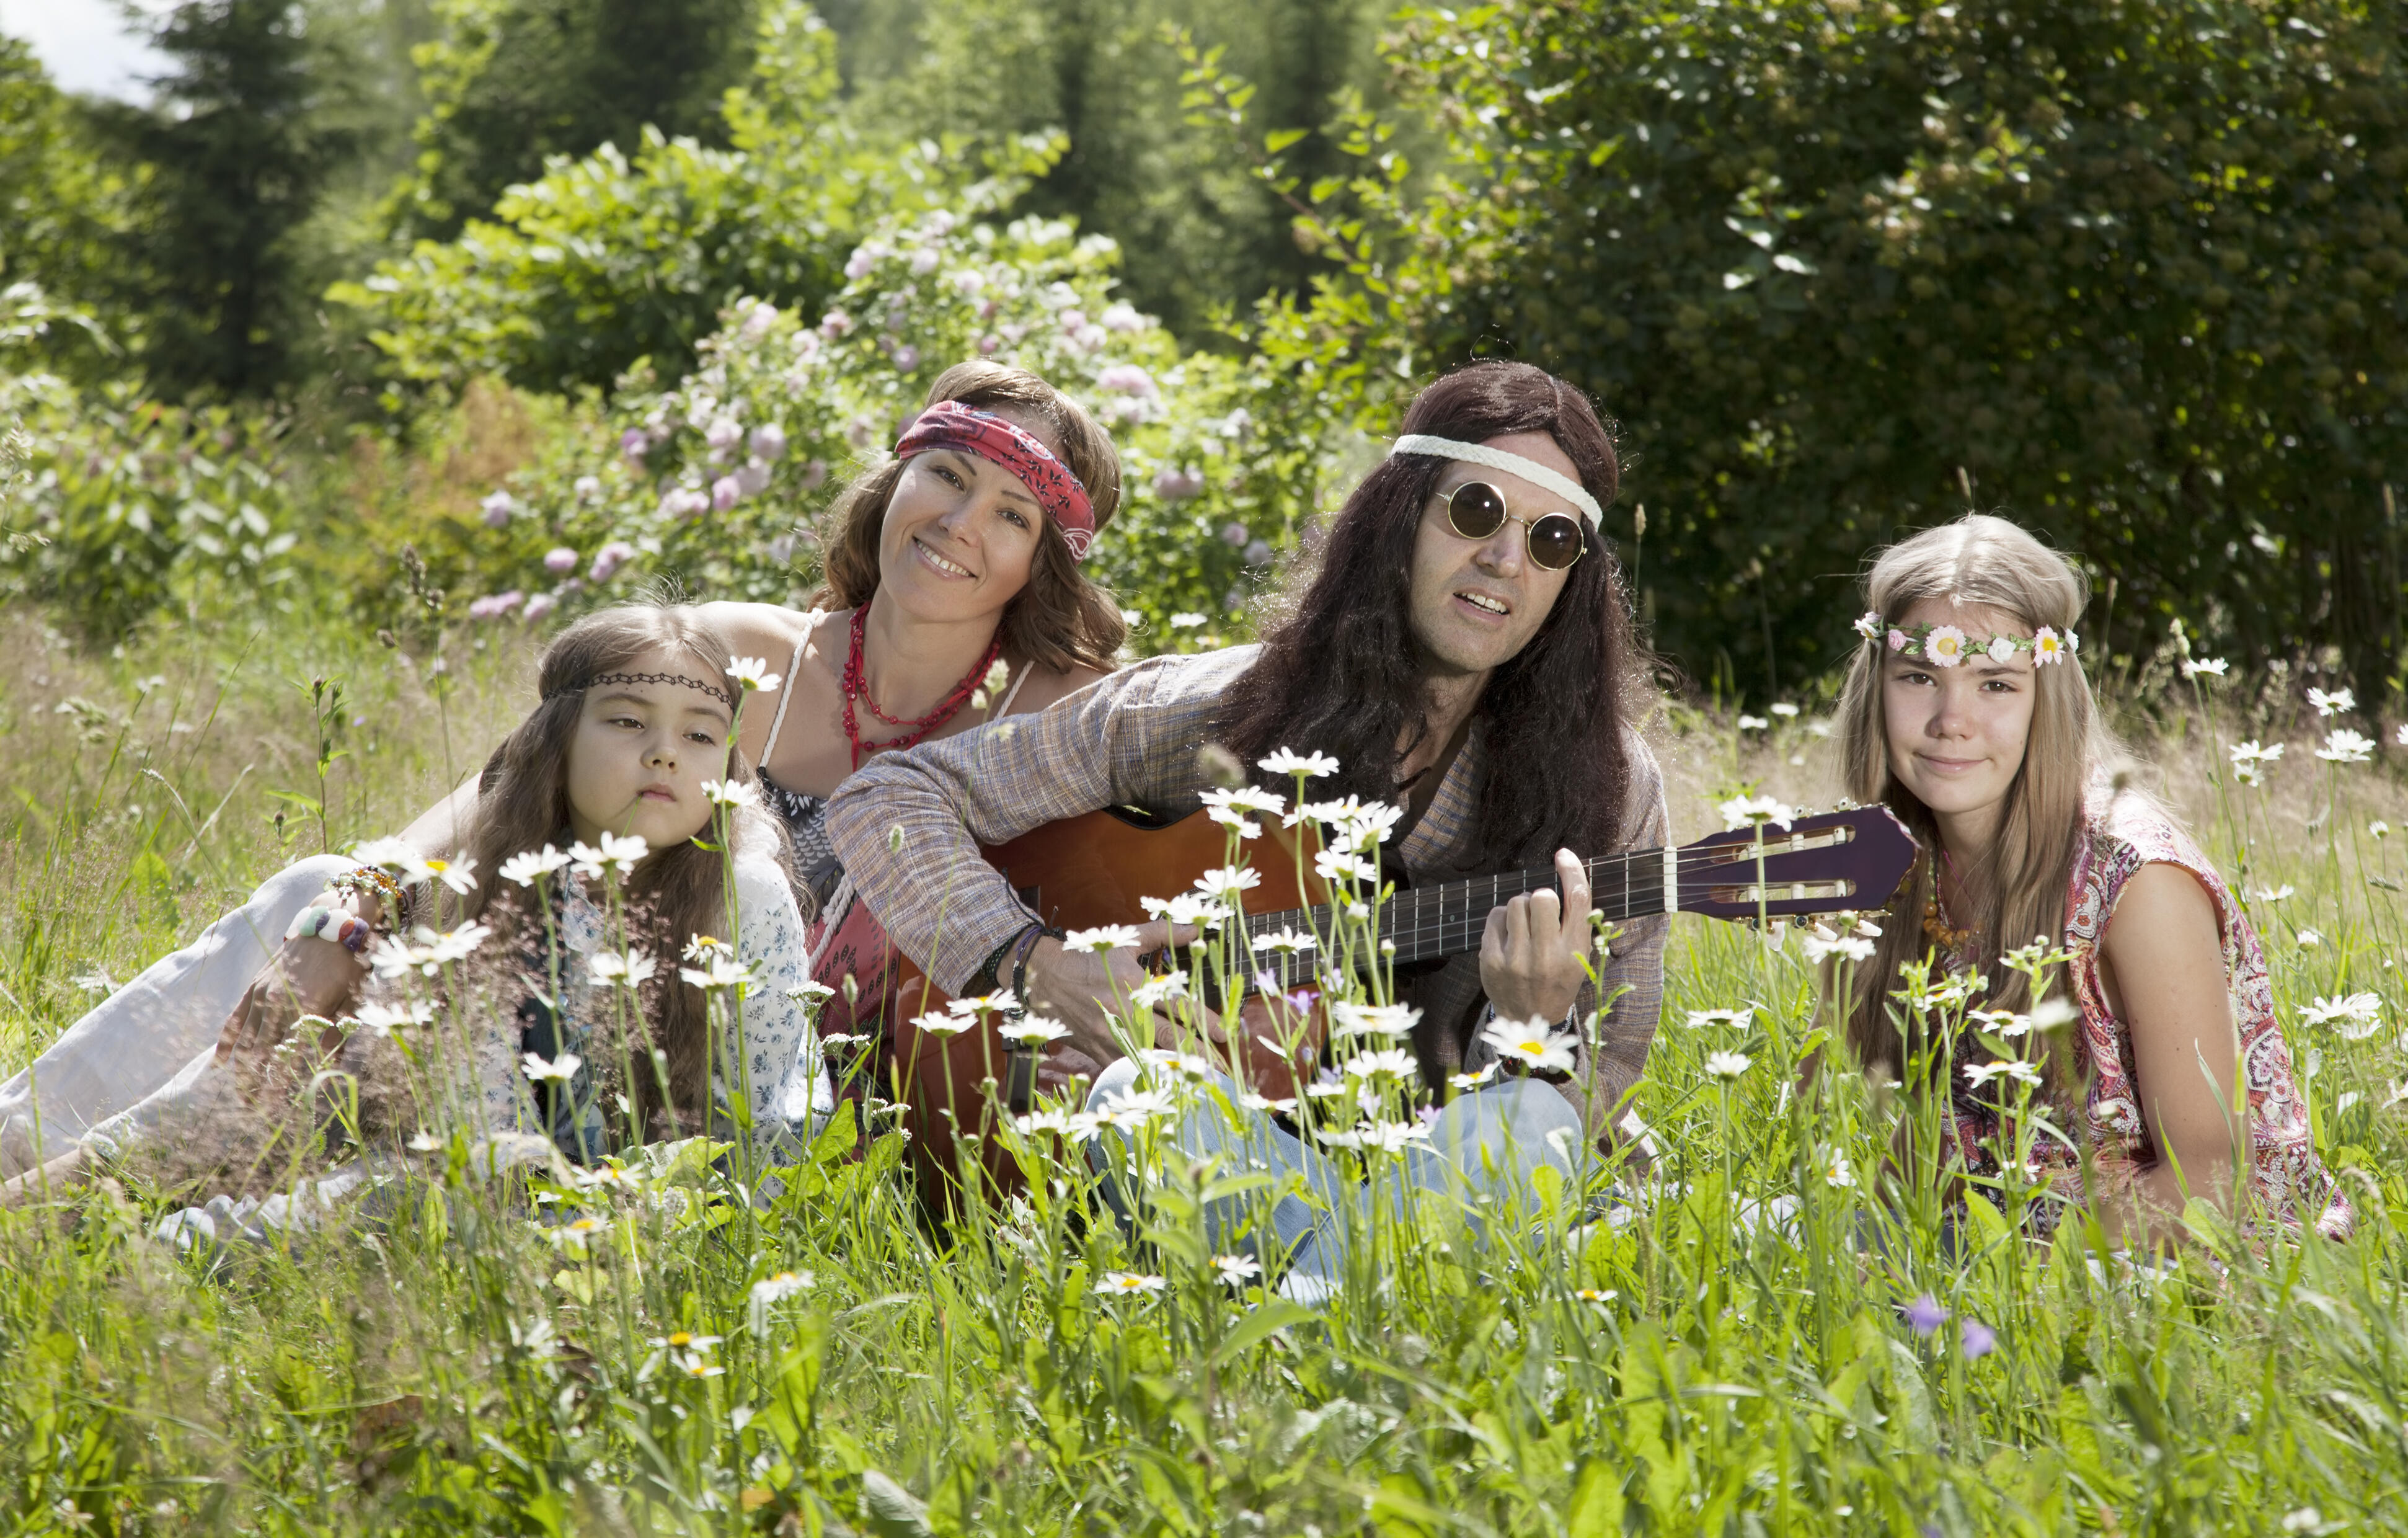 Hippie family sitting in the field and playing guitar on a sunny summer day.